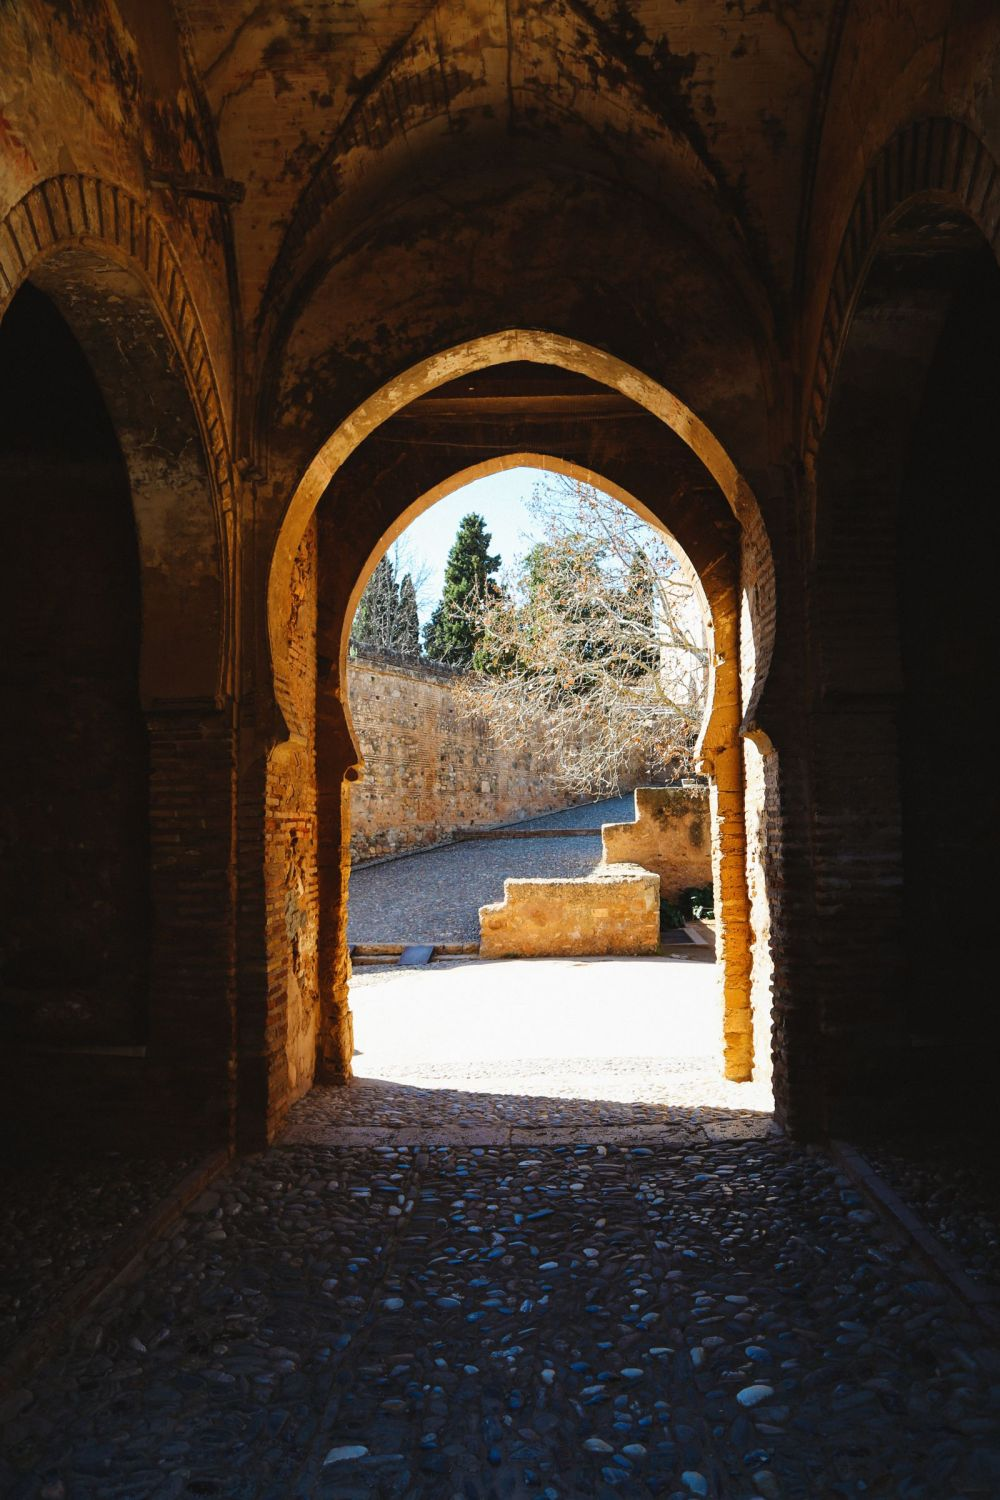 The Amazingly Intricate Alhambra Palace of Spain (36)